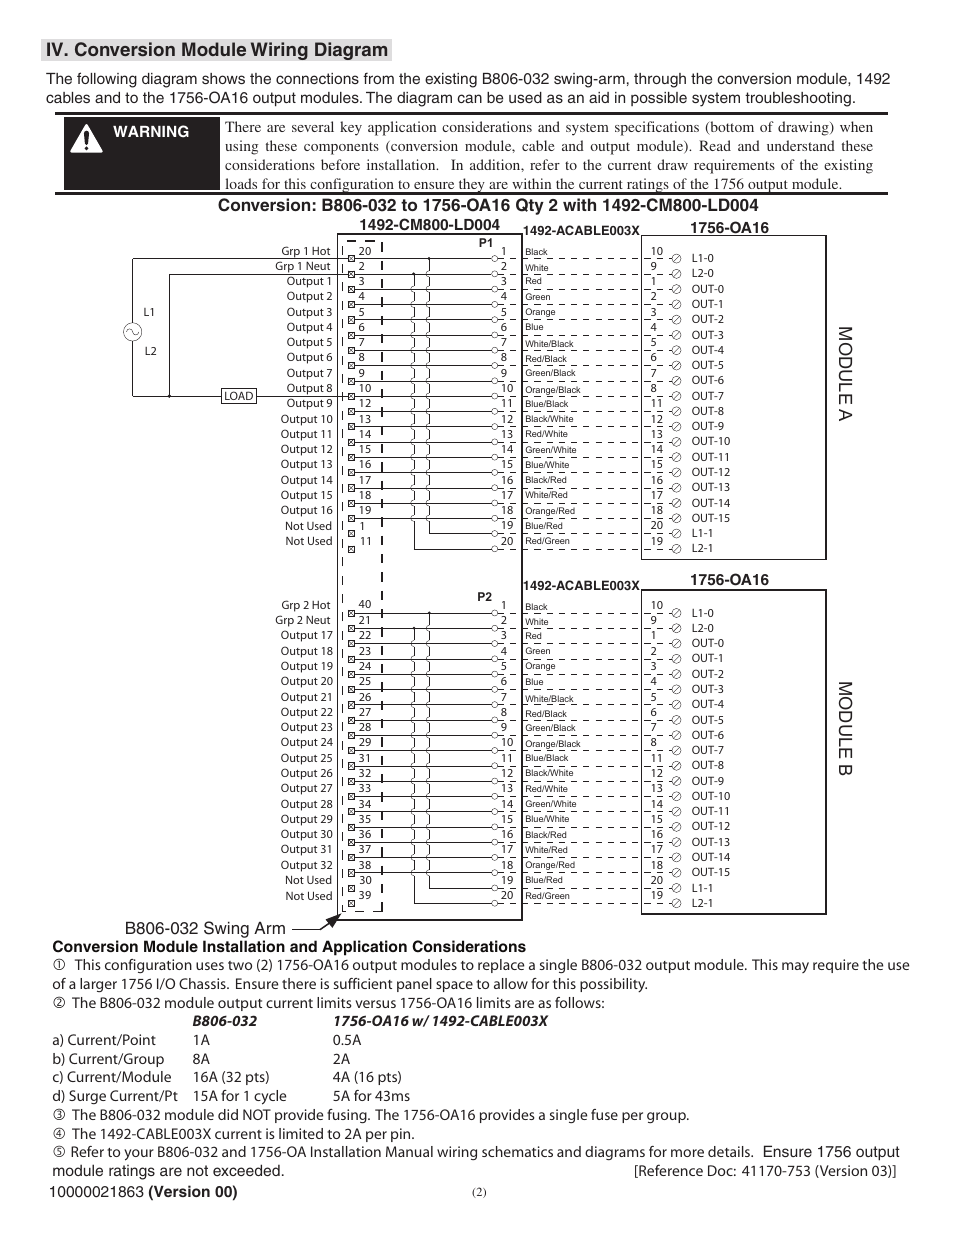 rockwell automation 1492 cm800 ld004 field wire conv module for modicon b806 032 to 1756 oa16 page2?resize\\\=665%2C861 hyosung gt250r wiring diagram beta wiring diagram, tomos wiring wiring diagram for tomos targa lx at n-0.co